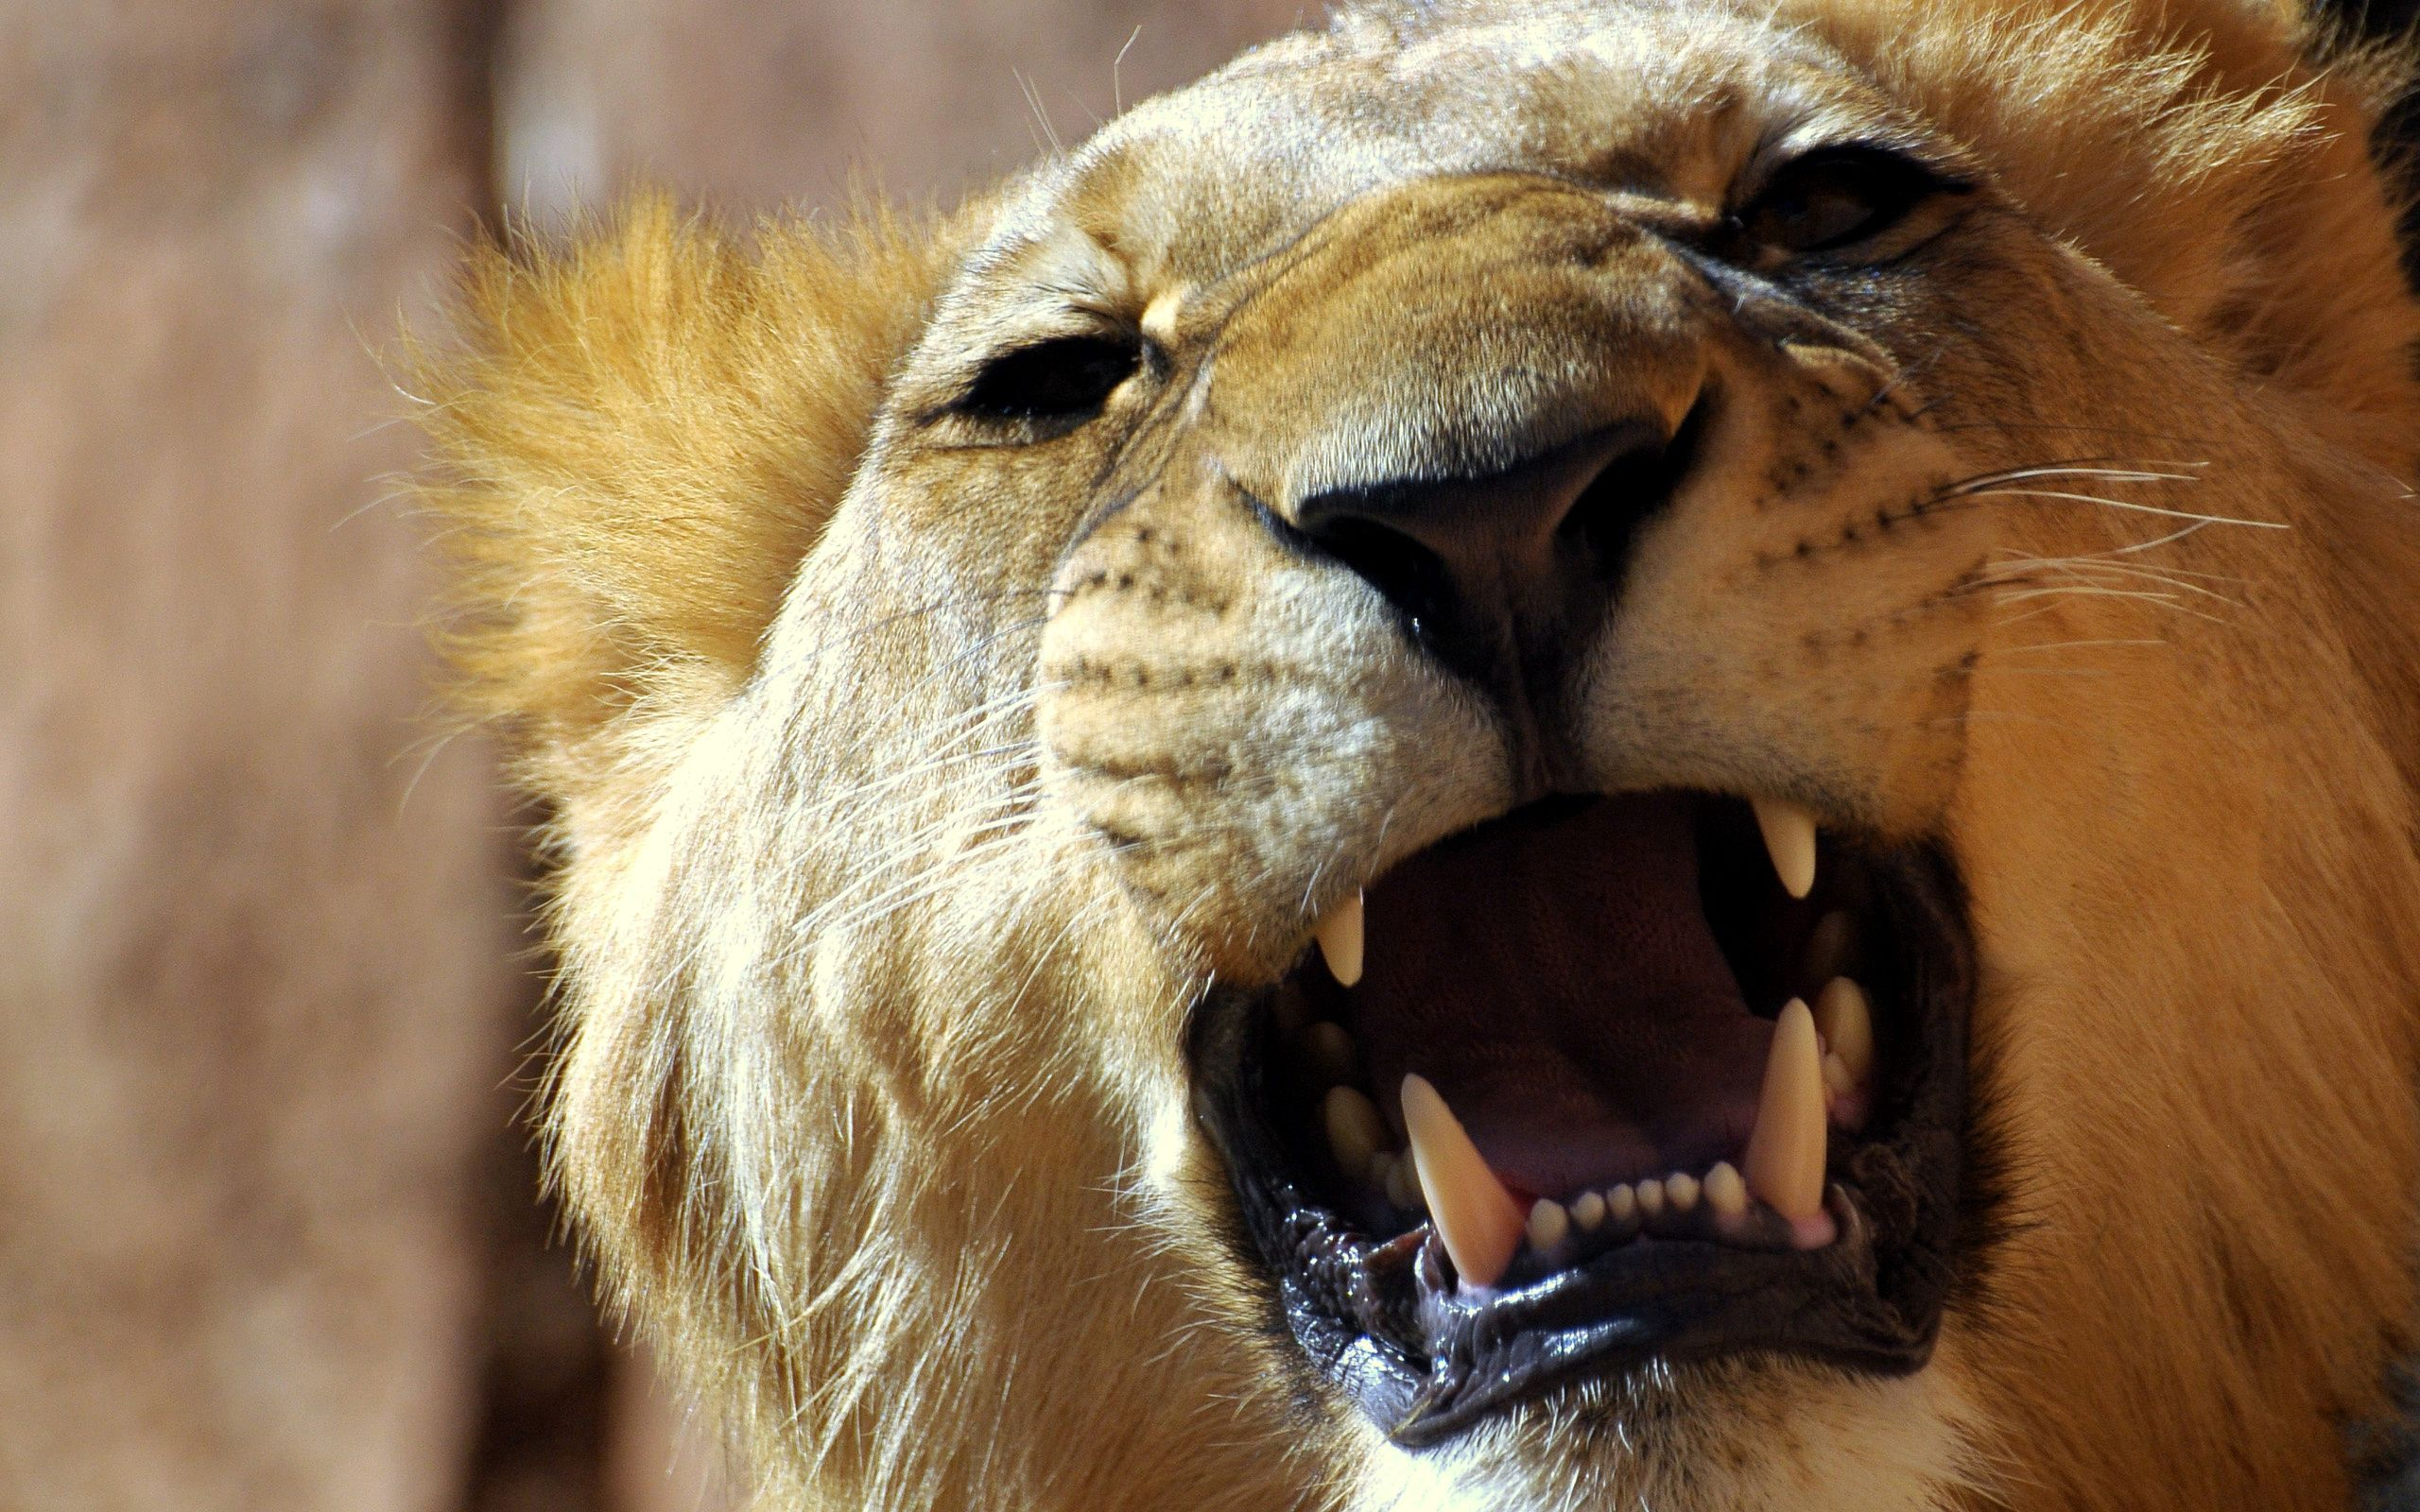 85515 download wallpaper Animals, Lion, Muzzle, Grin, Anger, Aggression screensavers and pictures for free